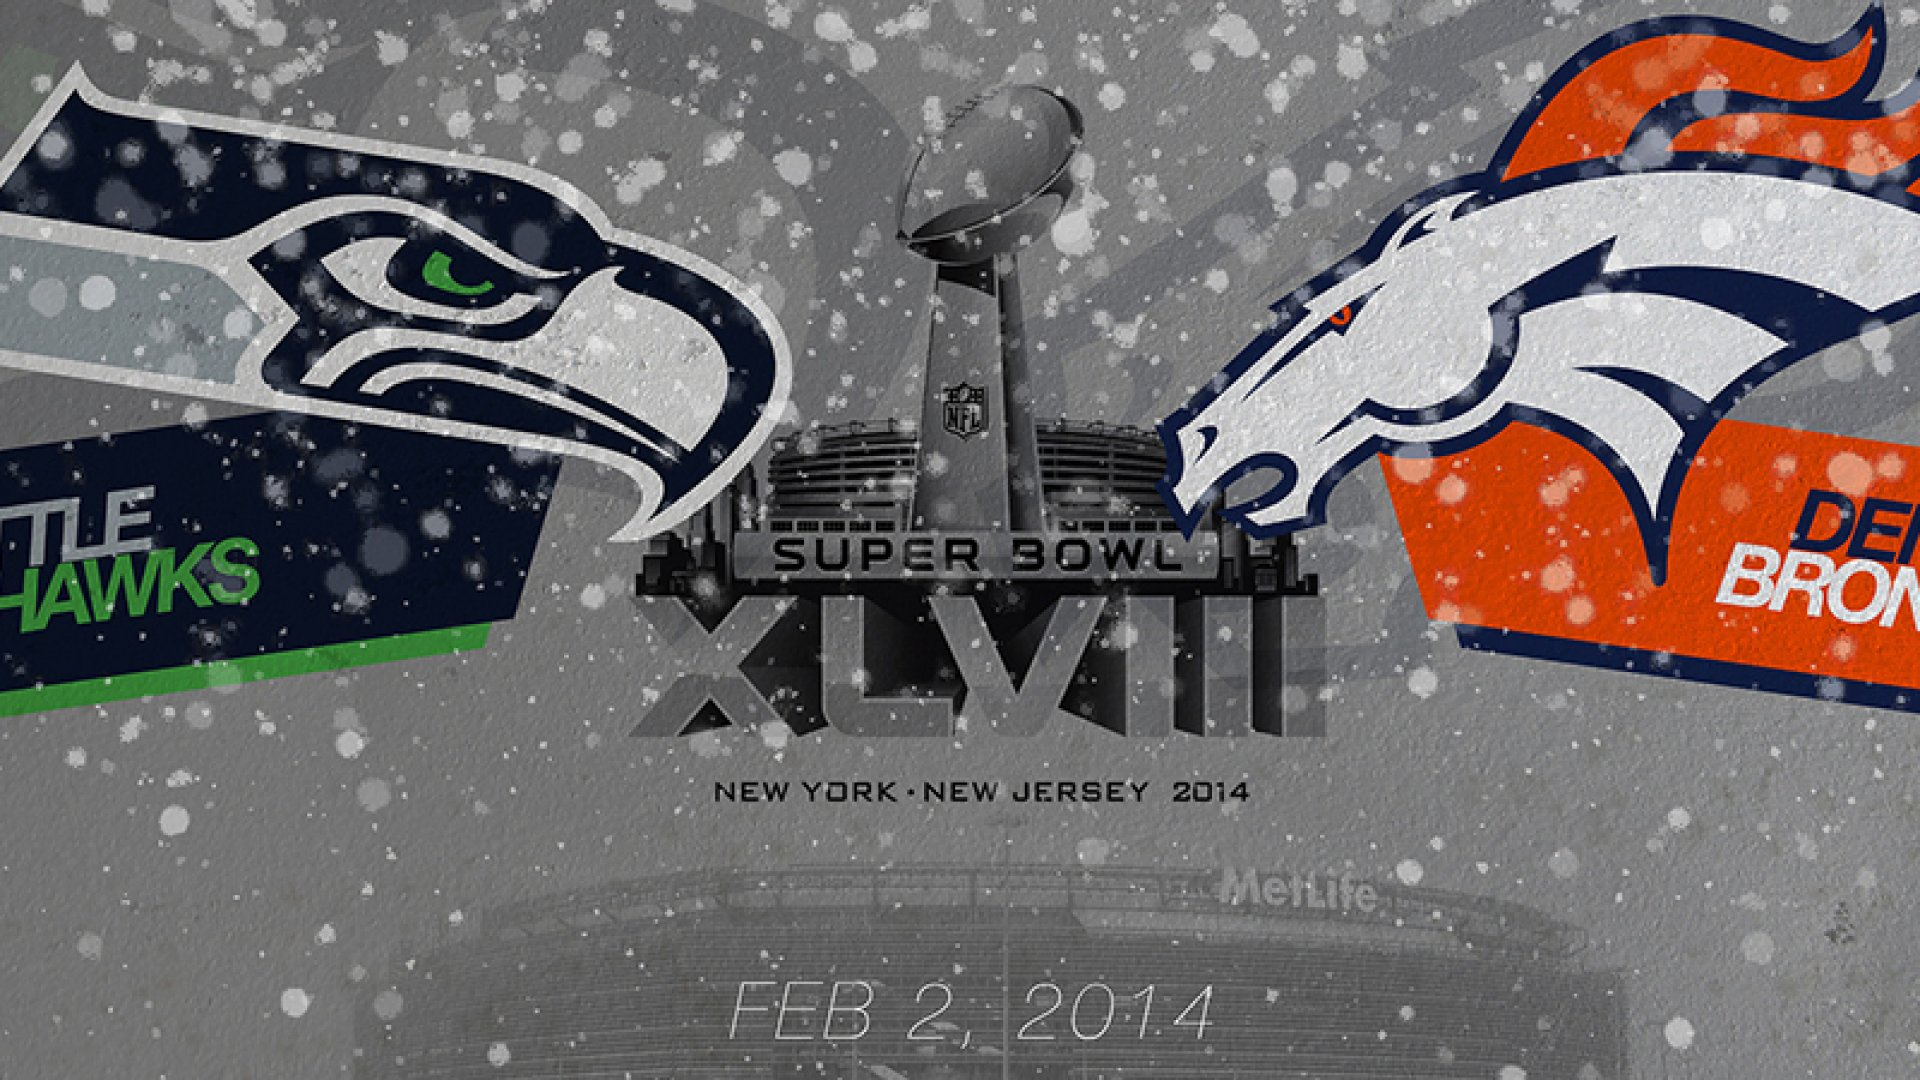 Infographic: 10 Super Bowl Facts Your Brand Needs To Know